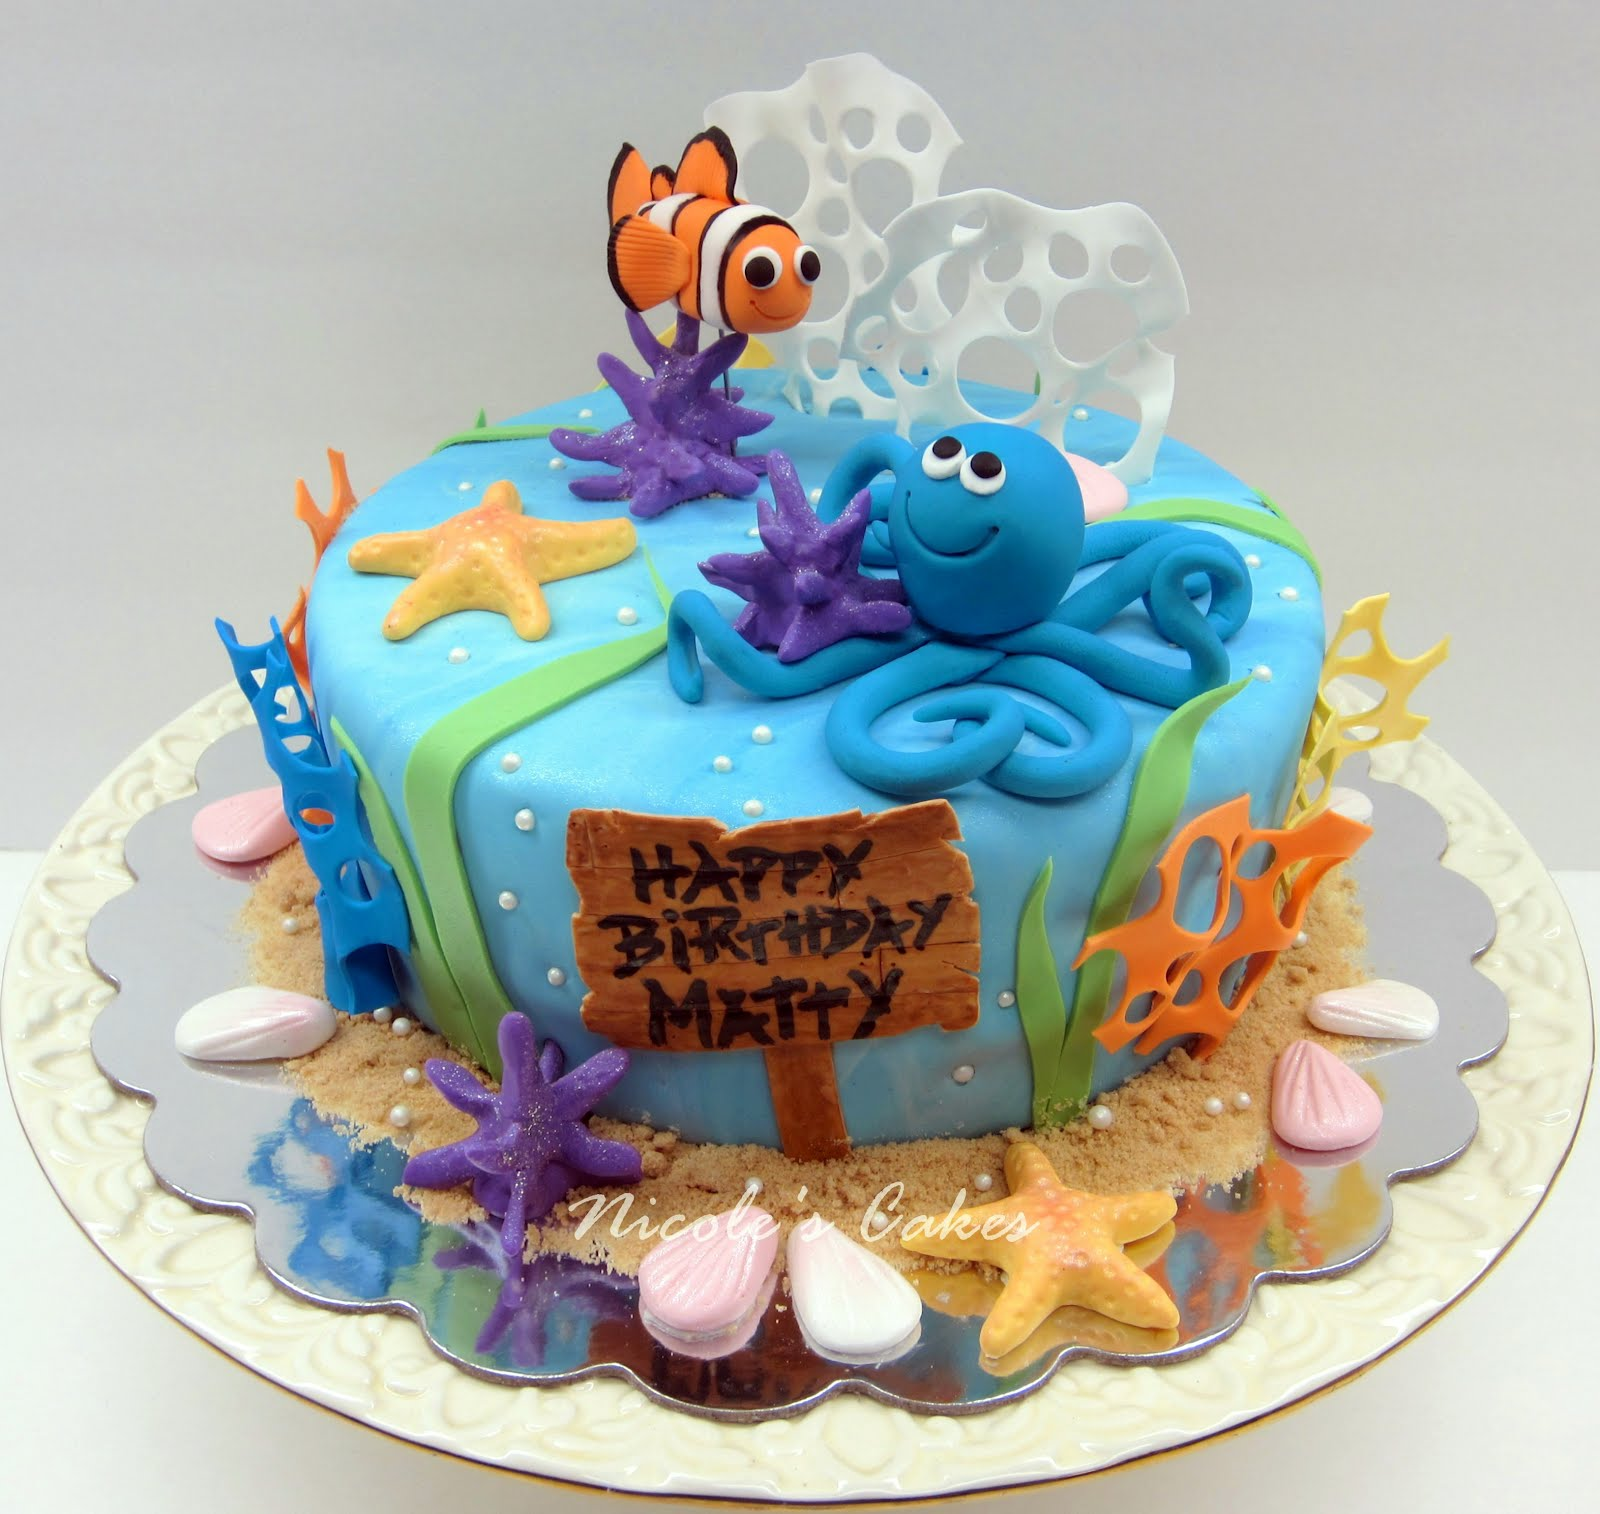 Under The Sea Birthday Cake This Fantastic Was Specially Designed For A 2 Year Old Boys